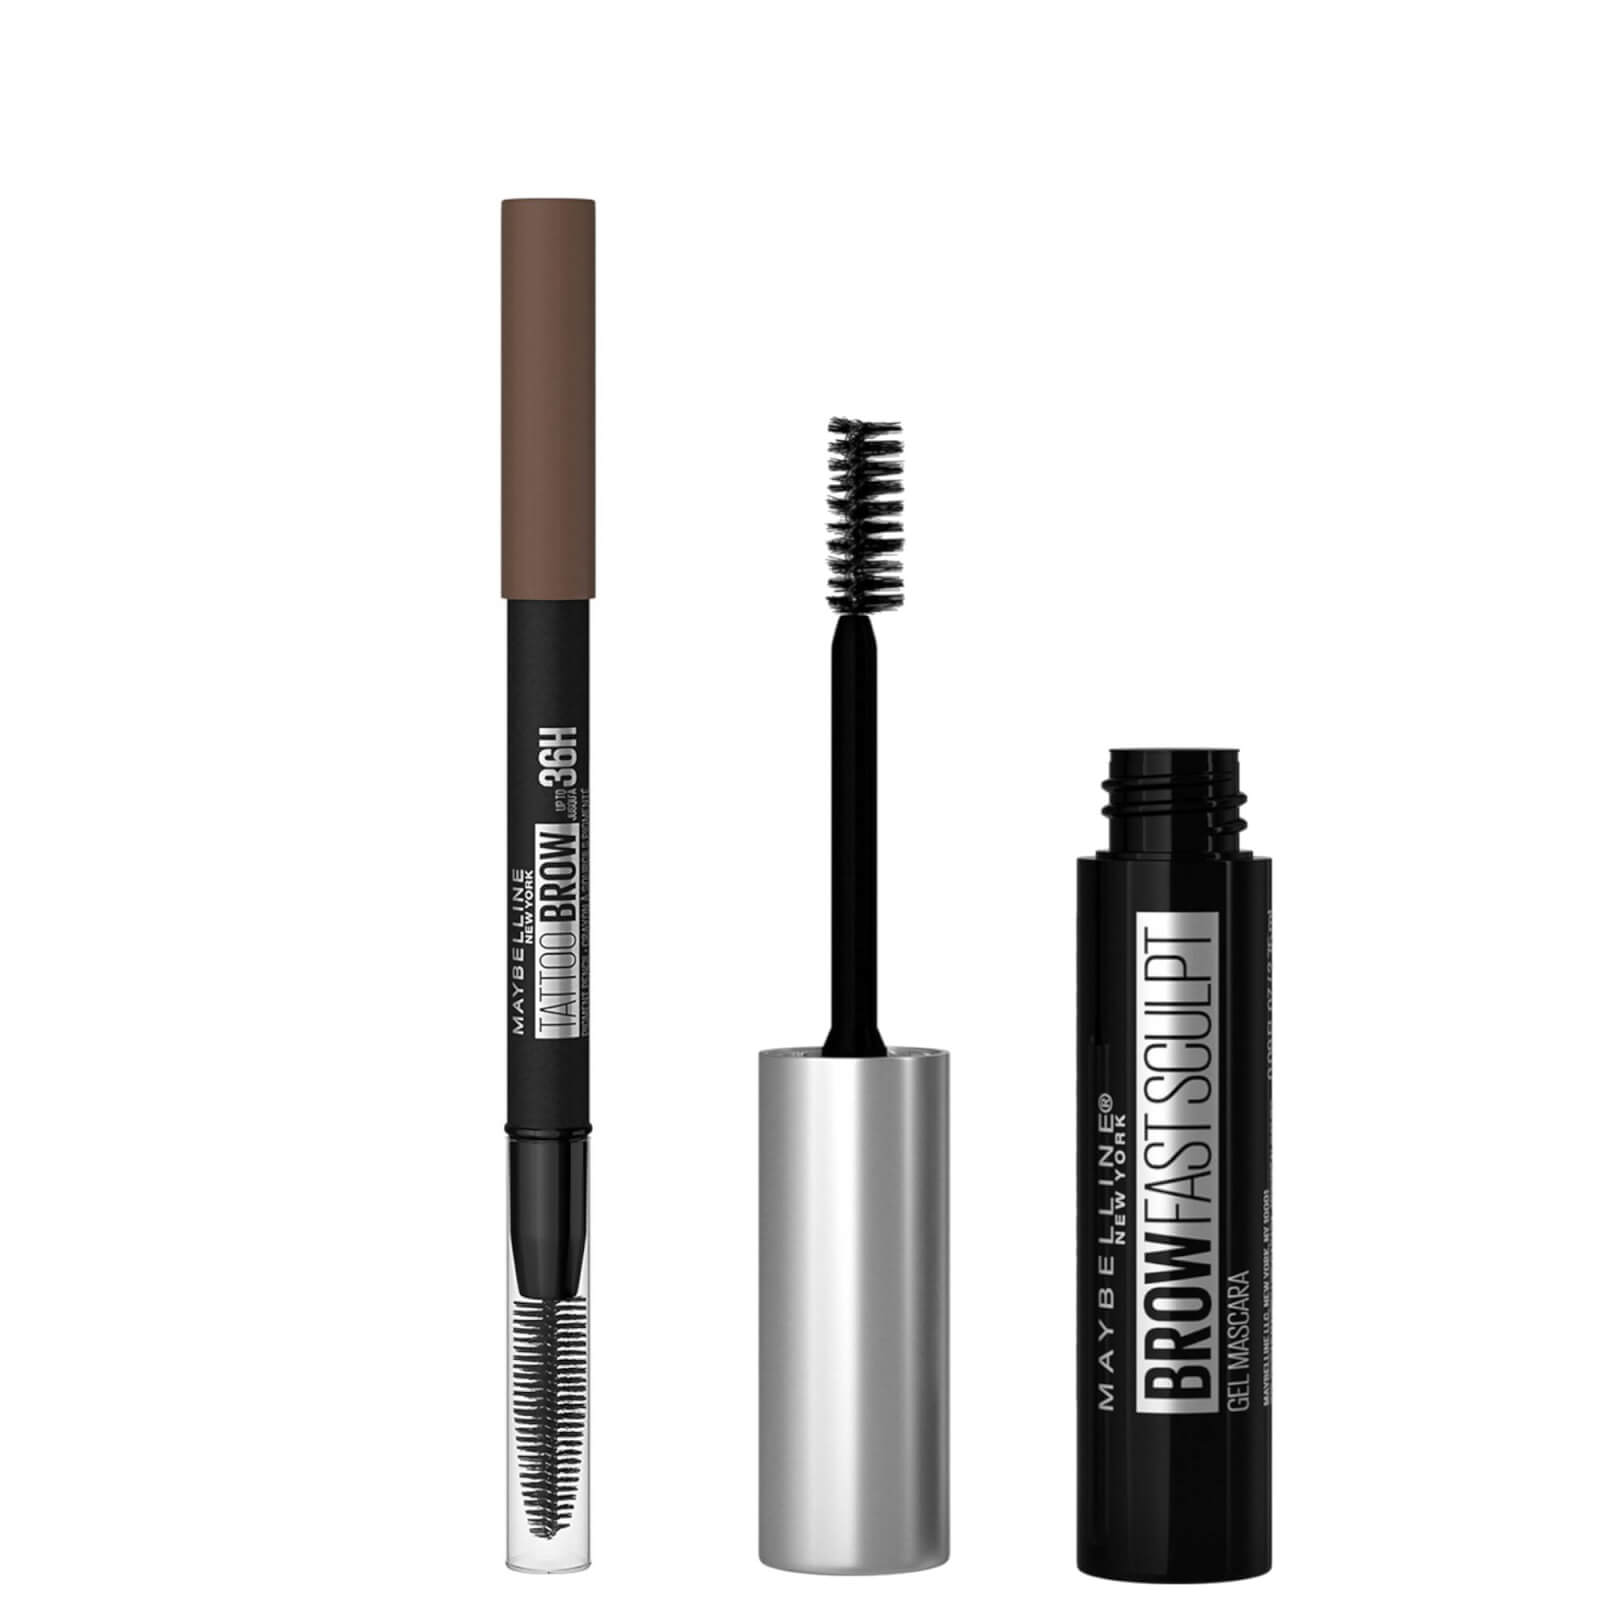 Maybelline Fill and Set Brow Bundle (Various Shades) - Medium Brown 05